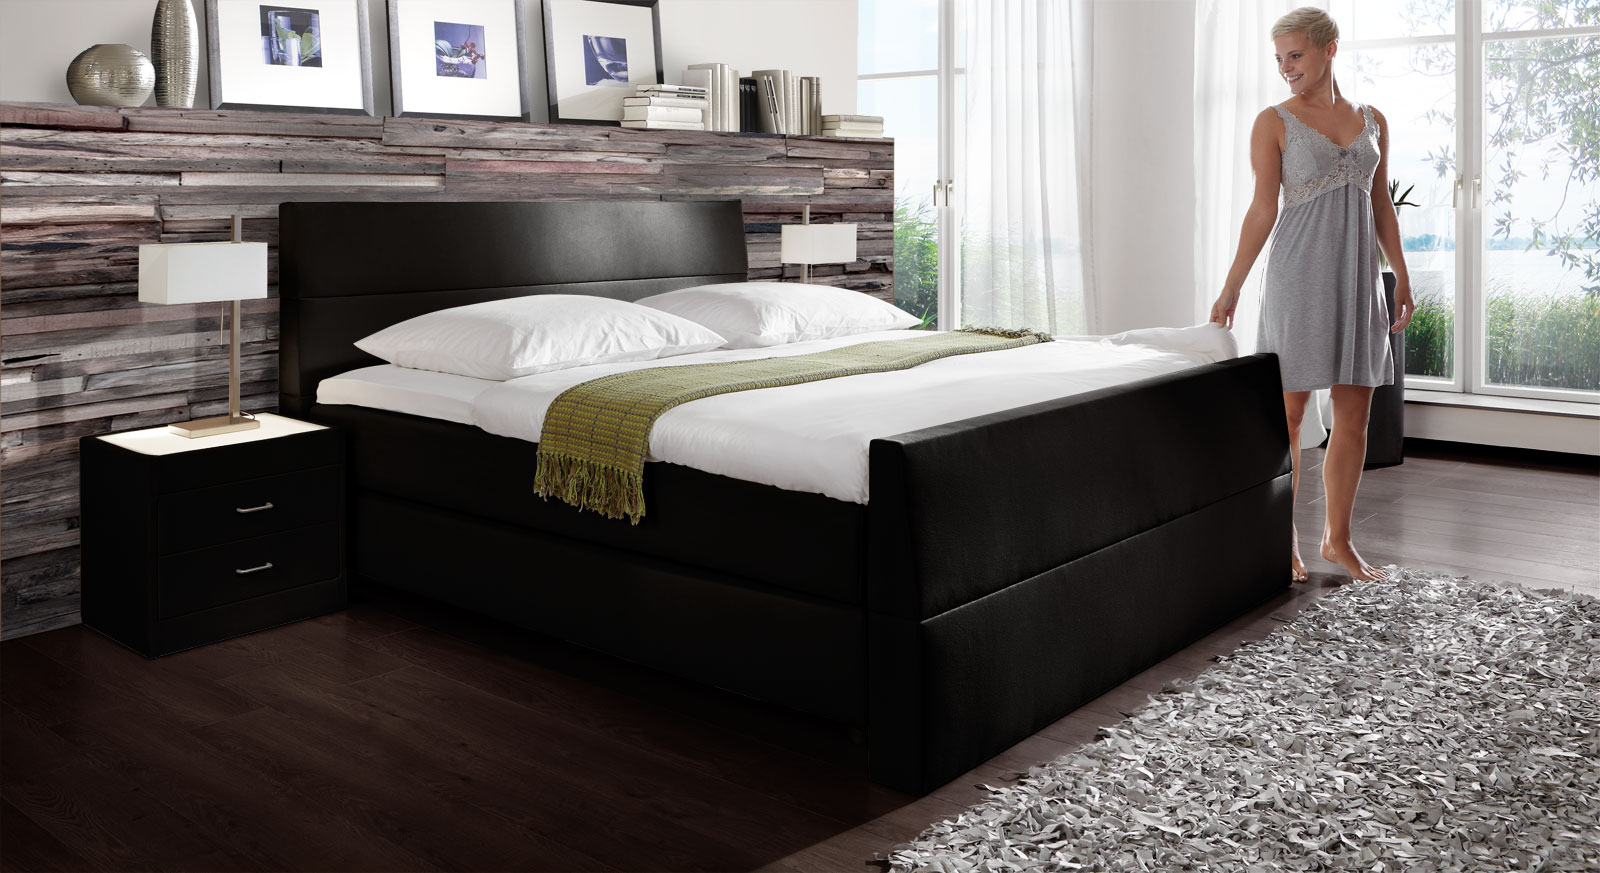 schlafzimmer gestalten farbe gelb. Black Bedroom Furniture Sets. Home Design Ideas